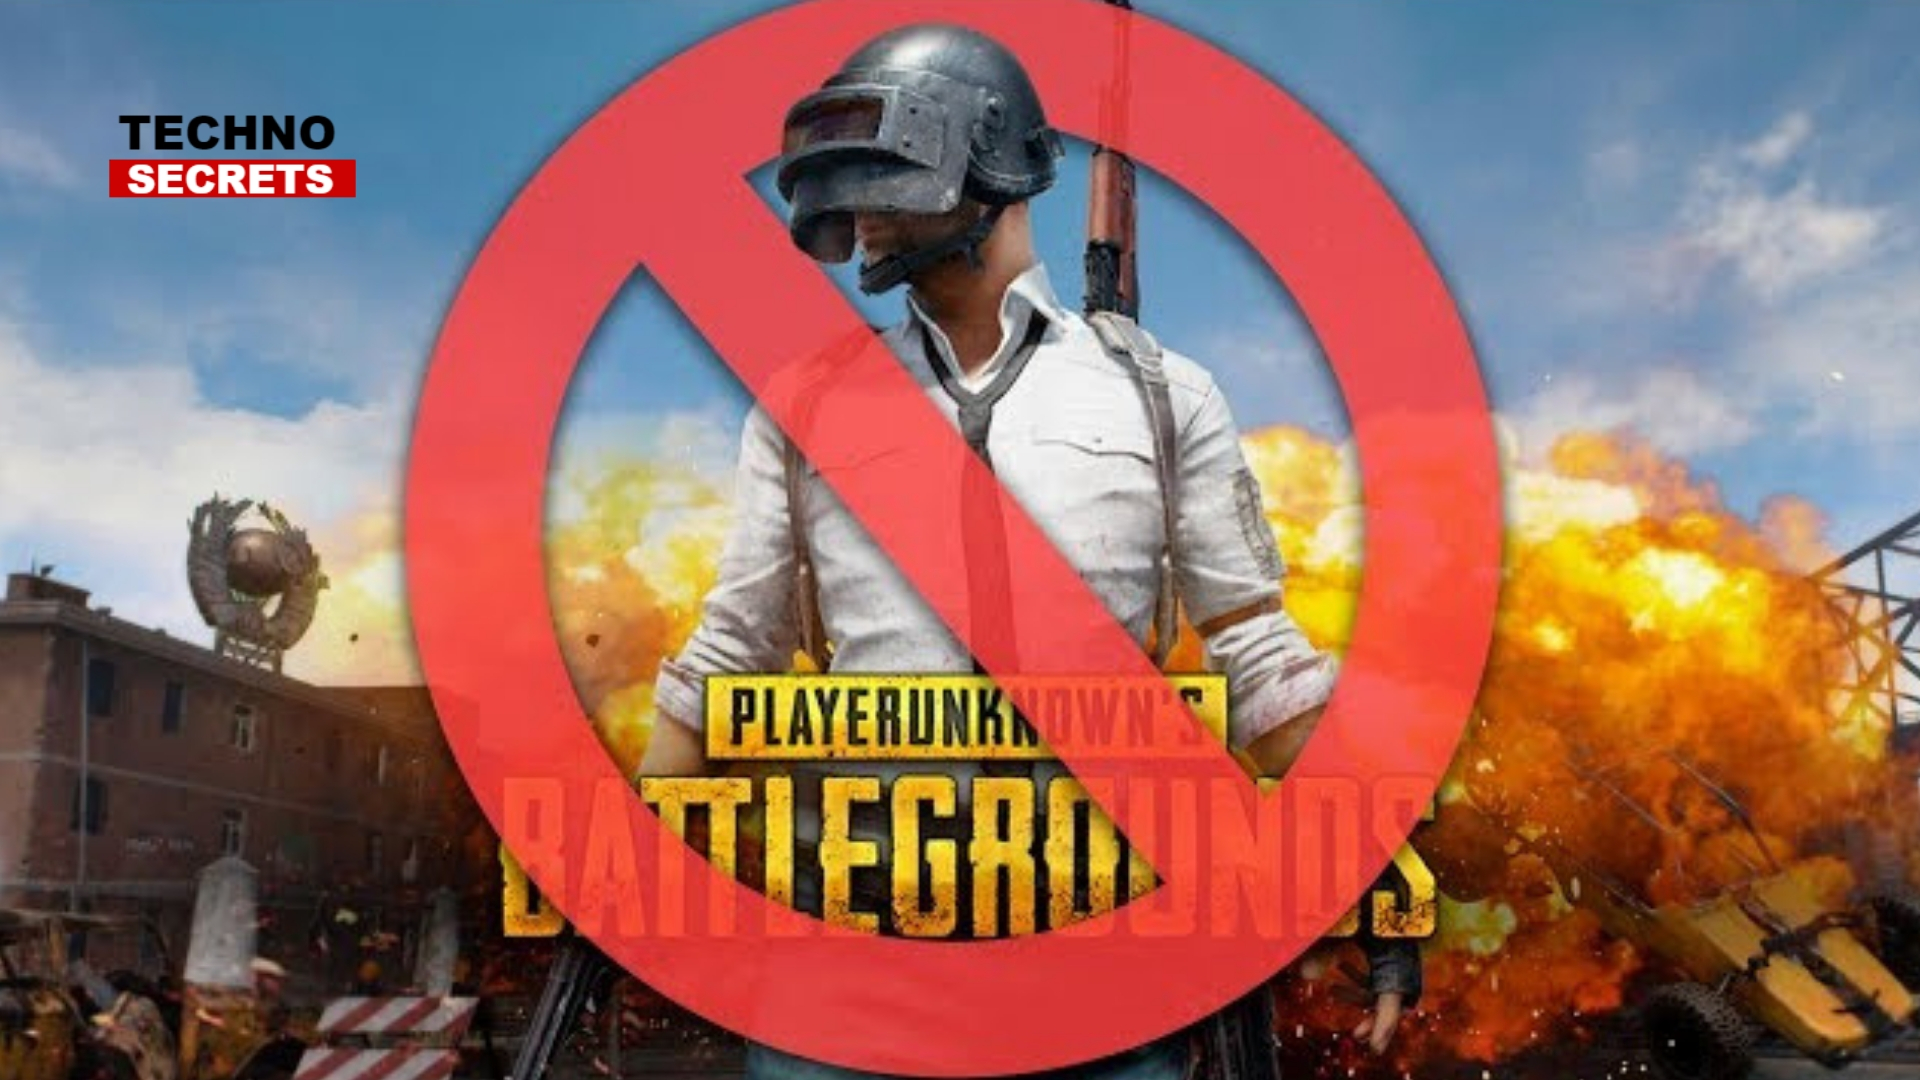 Gujrat Government Banned PUBG Game After Seen Students Addiction.